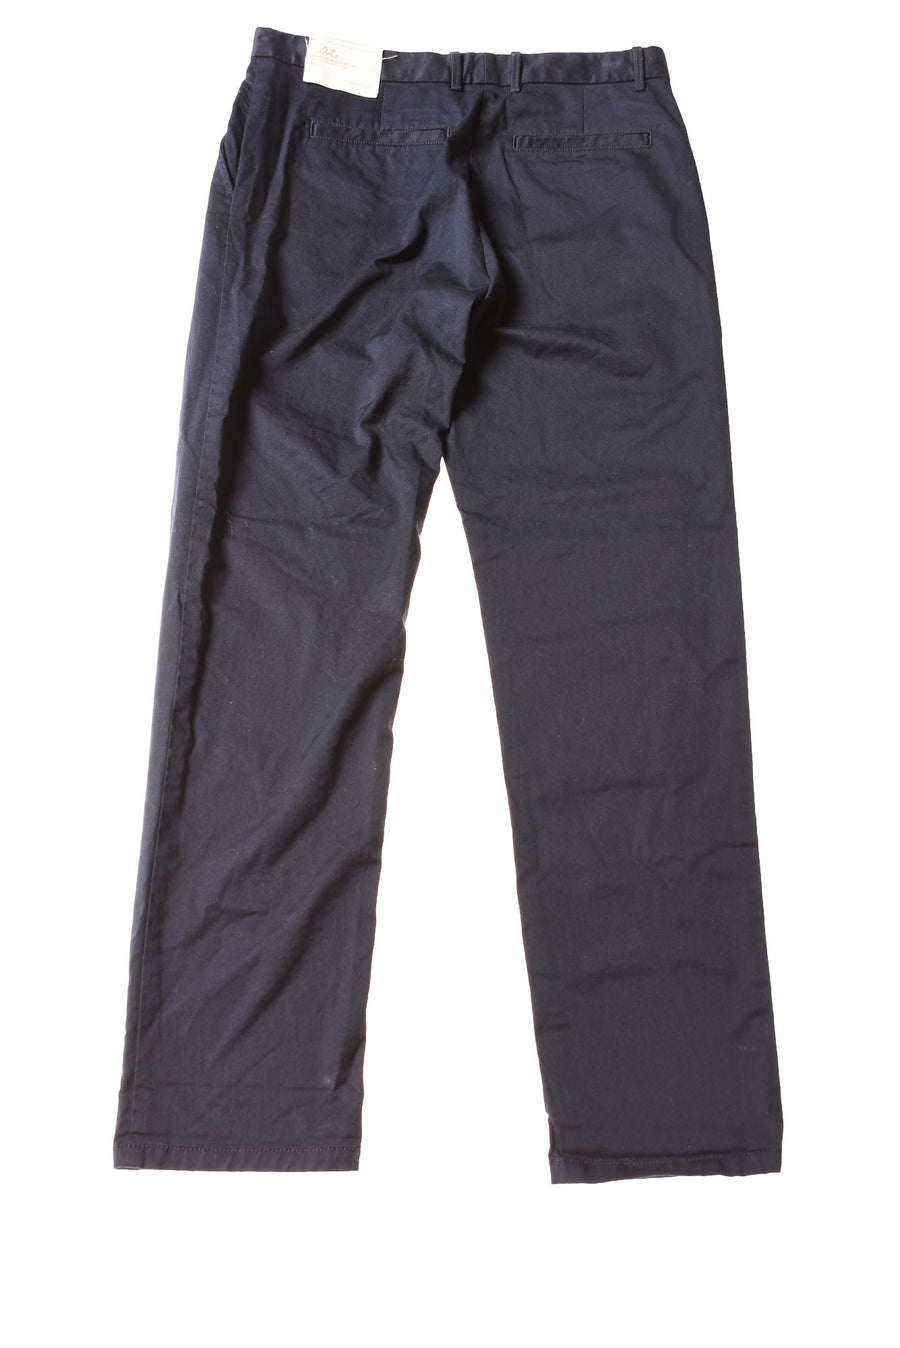 USED Gap Women's Slacks 2 Blue